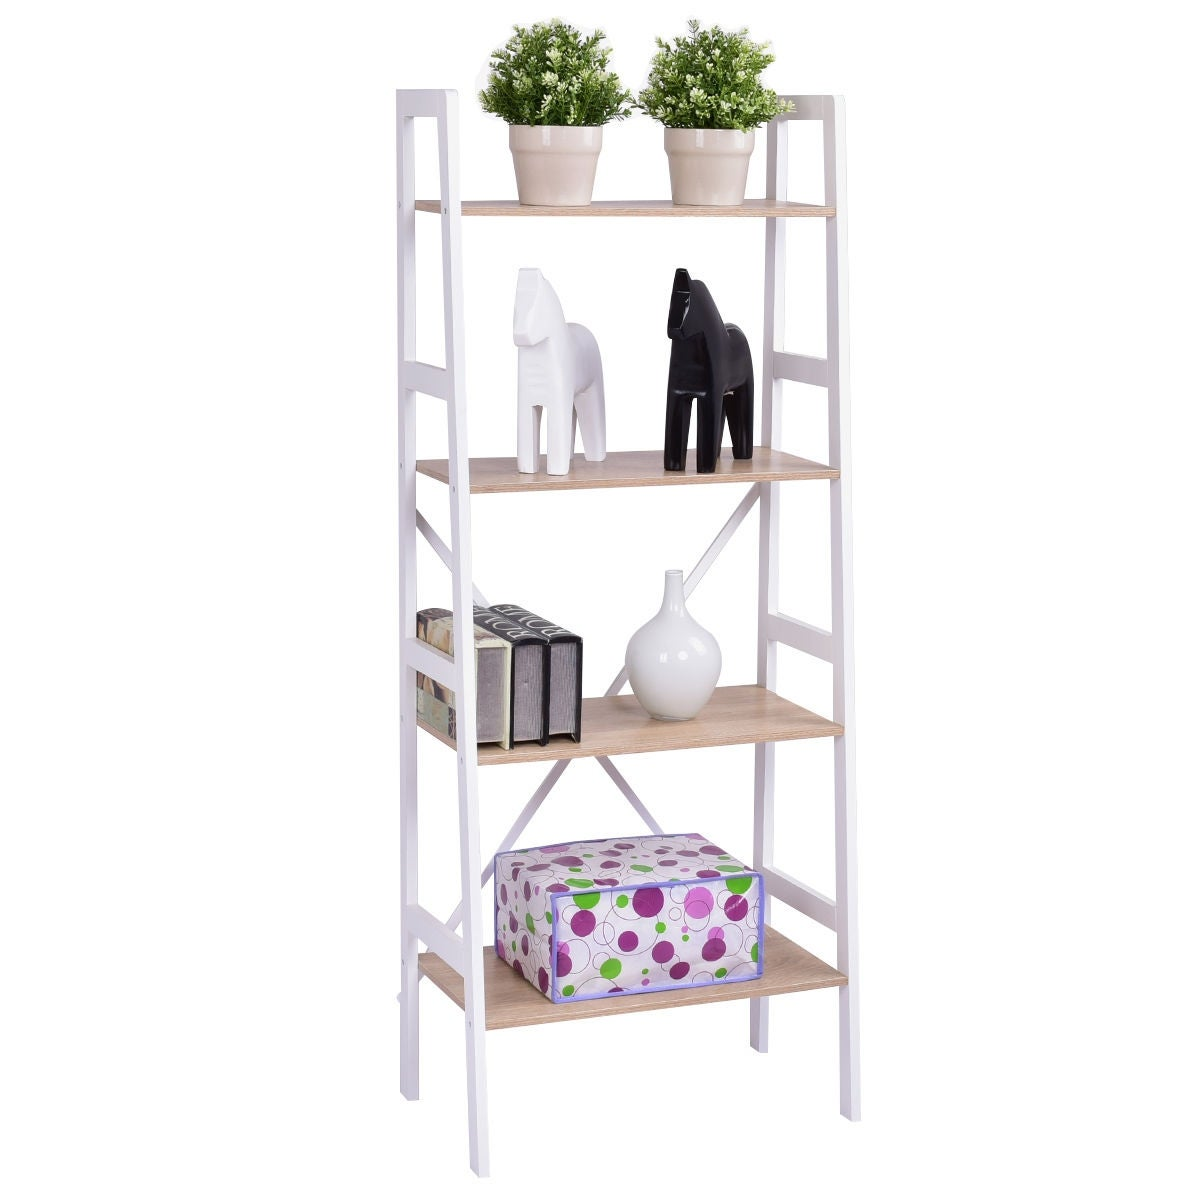 4 Tier Ladder Wall Stand Display Bookshelf Bookcase Storage Shelves Book Rack